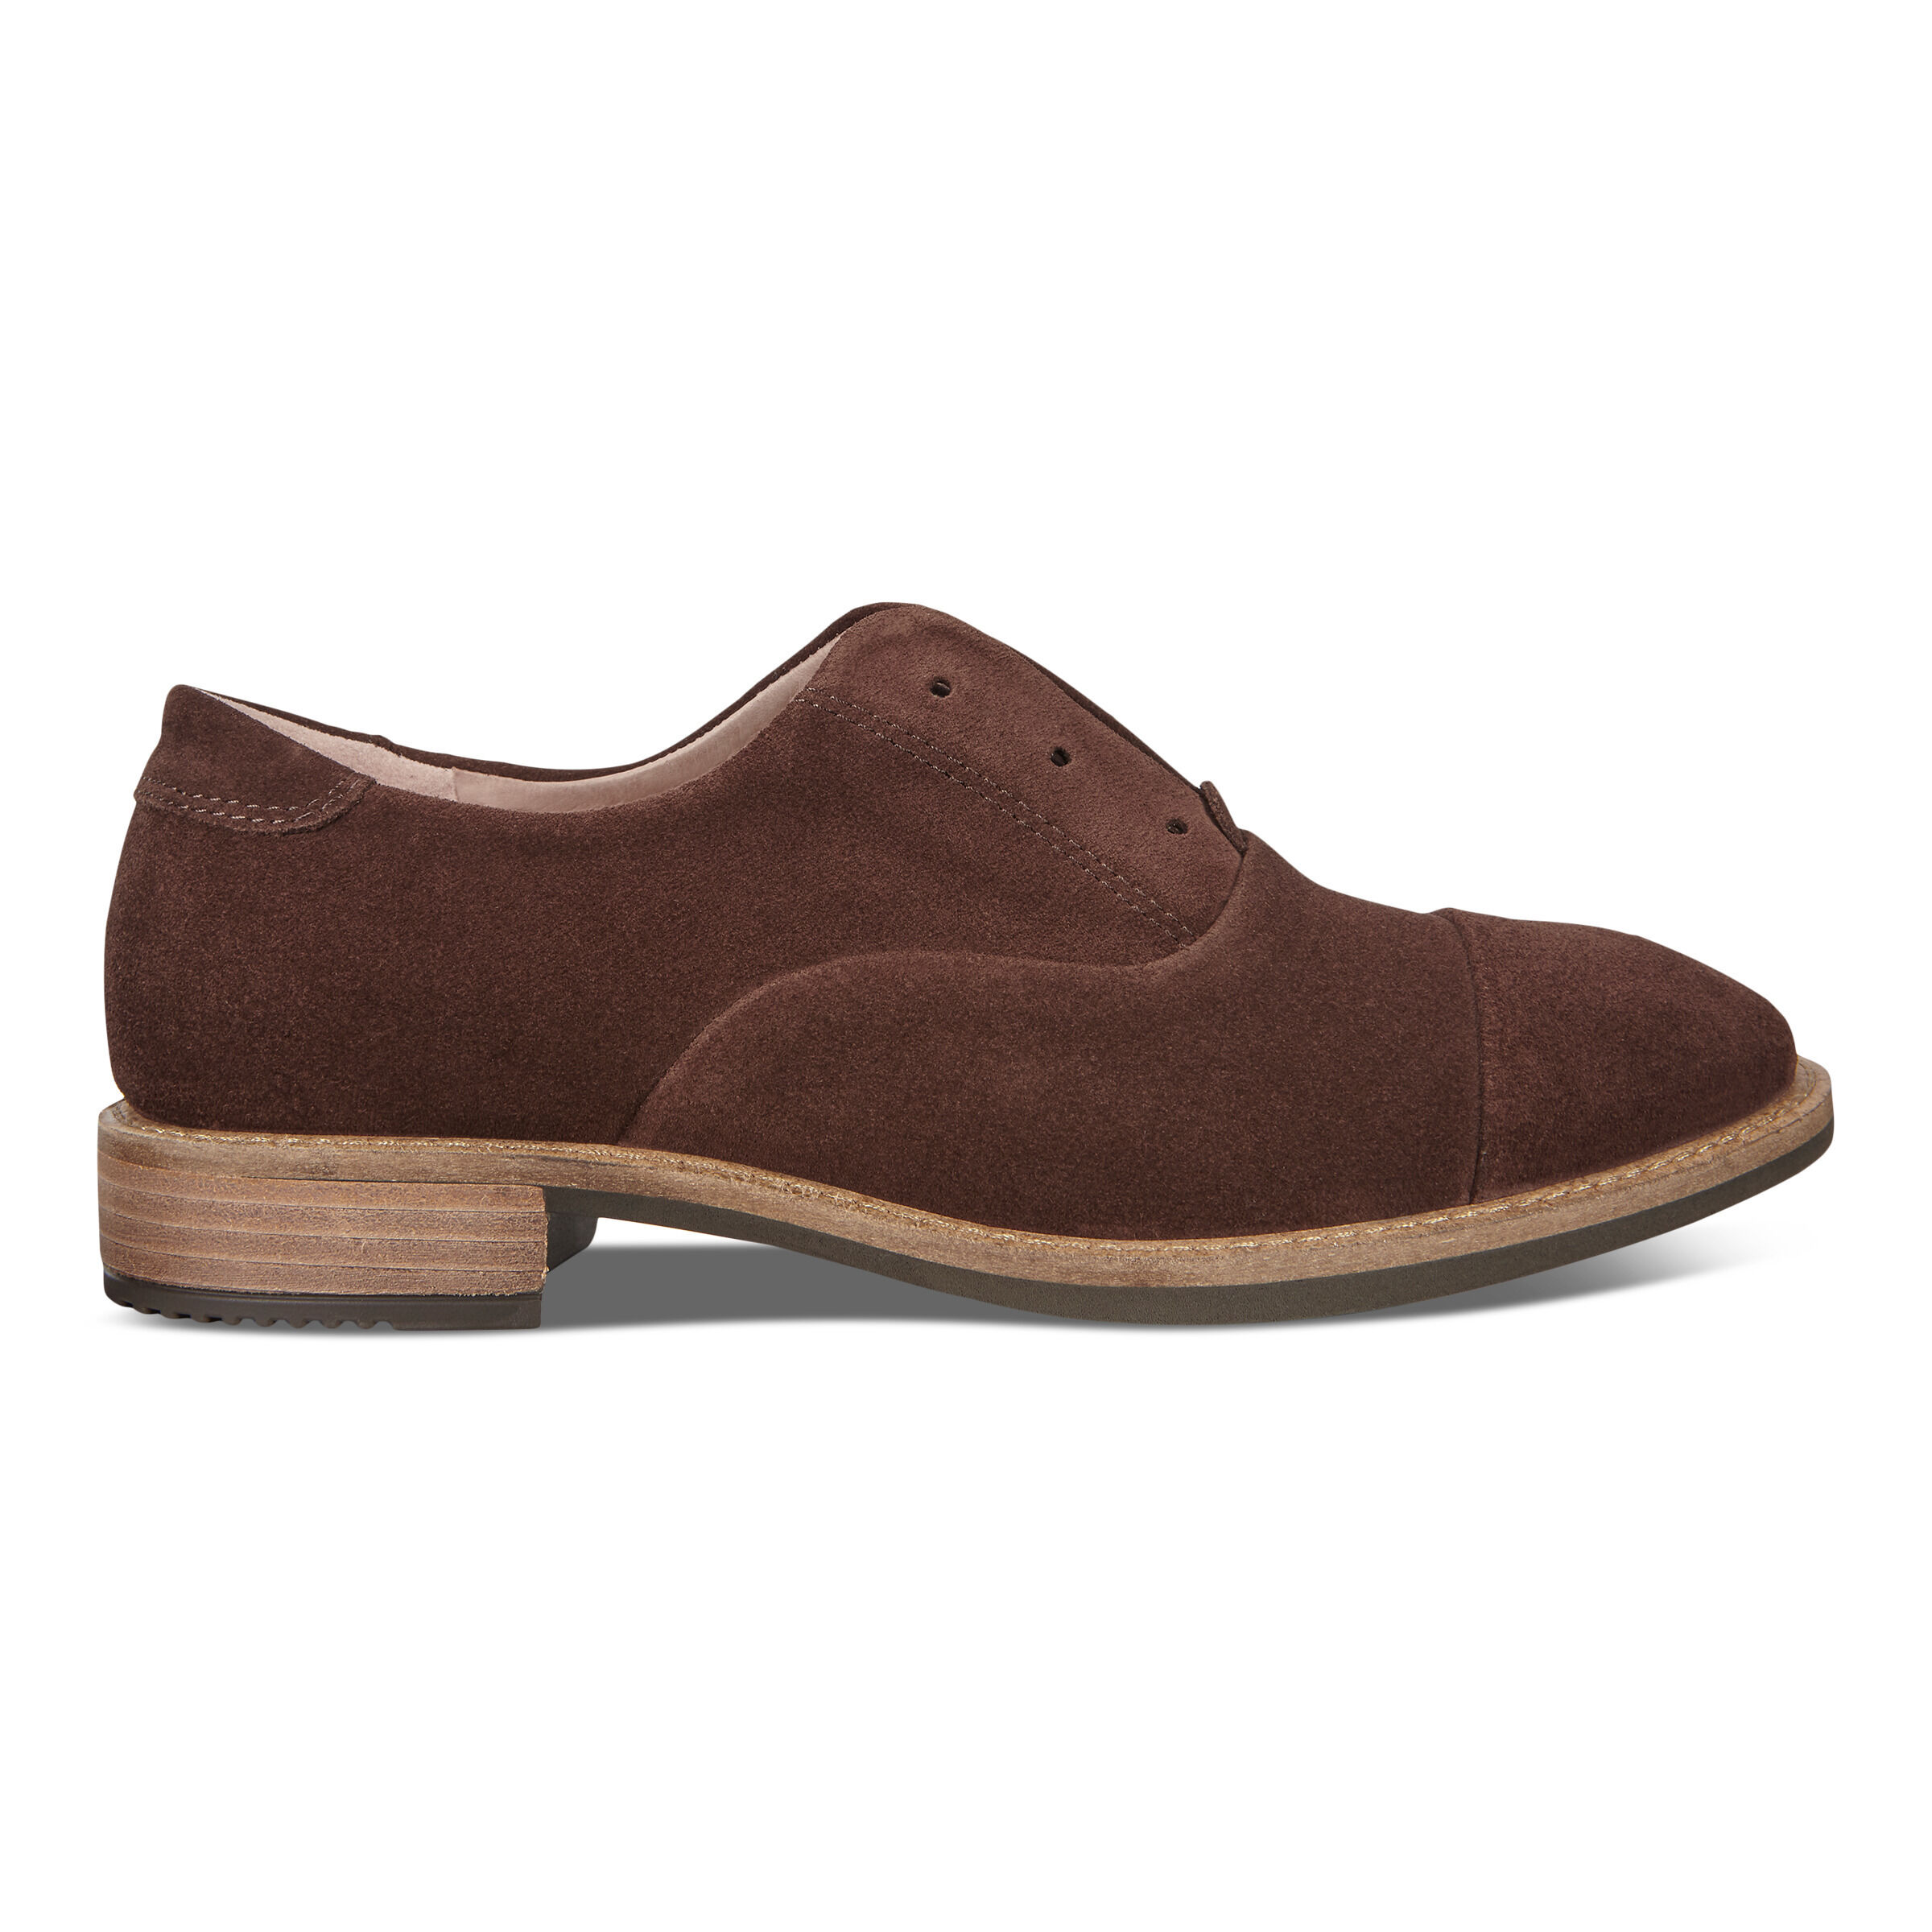 ECCO Sartorelle 25 Tailored Suede Womens Shoes